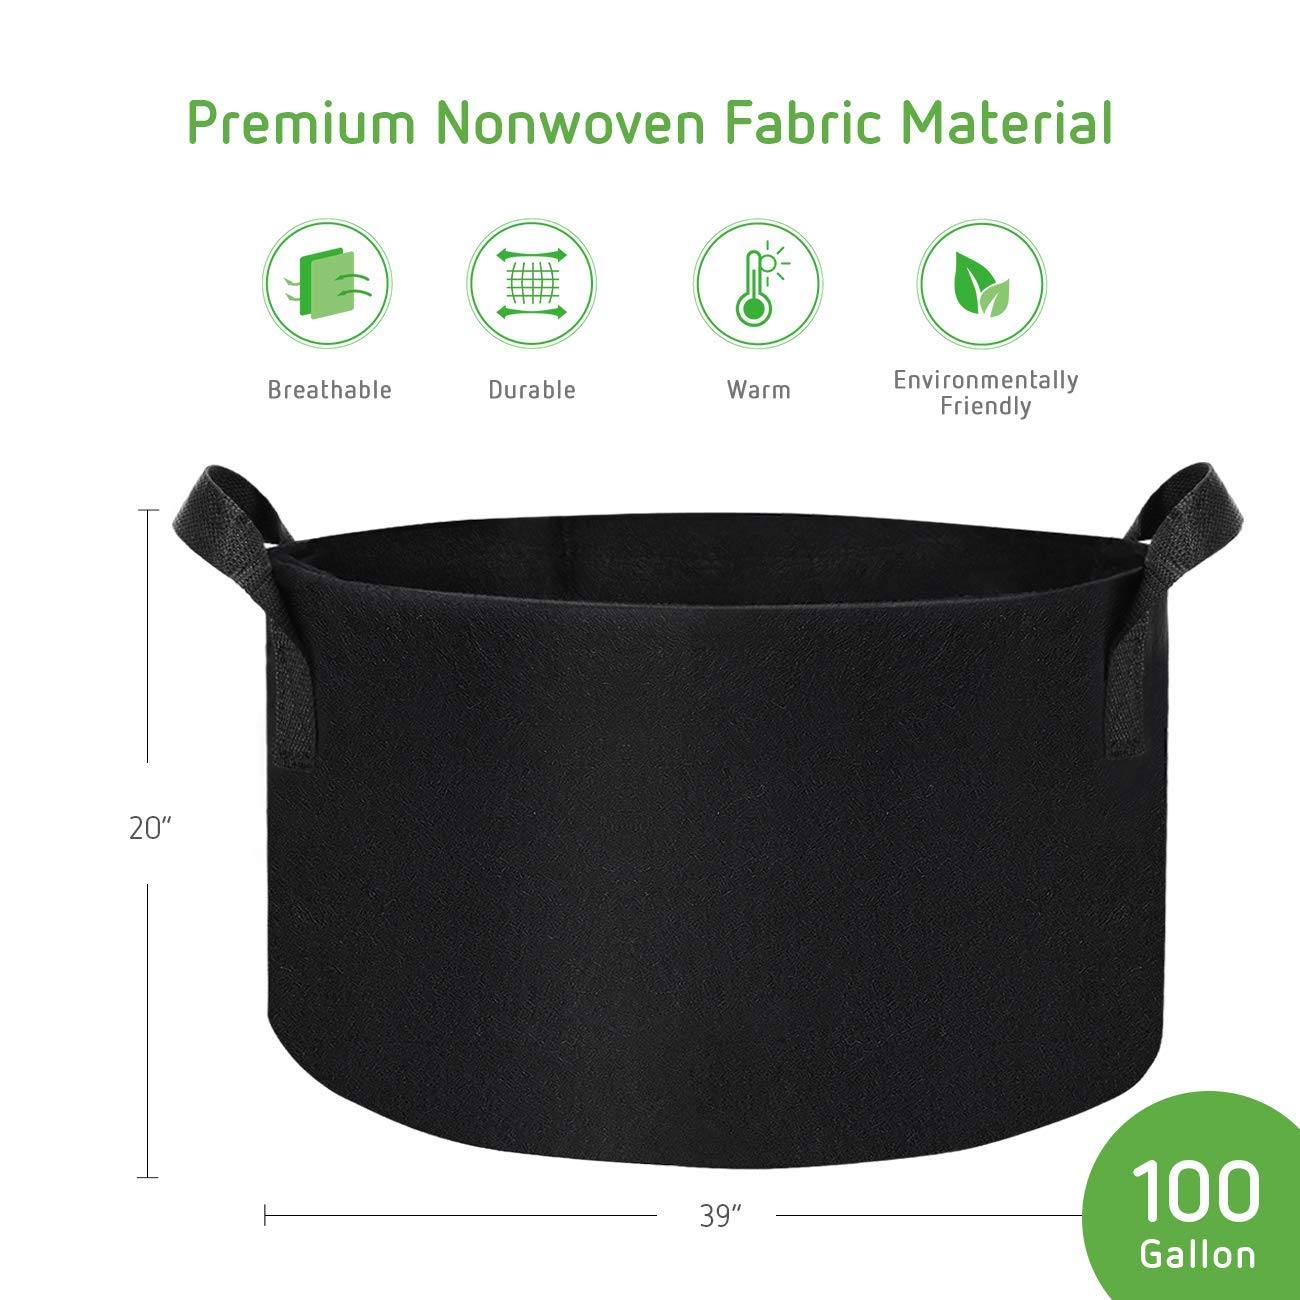 Patio, Lawn & Garden Fabric Pot with Handles for Growing Vegtables ...